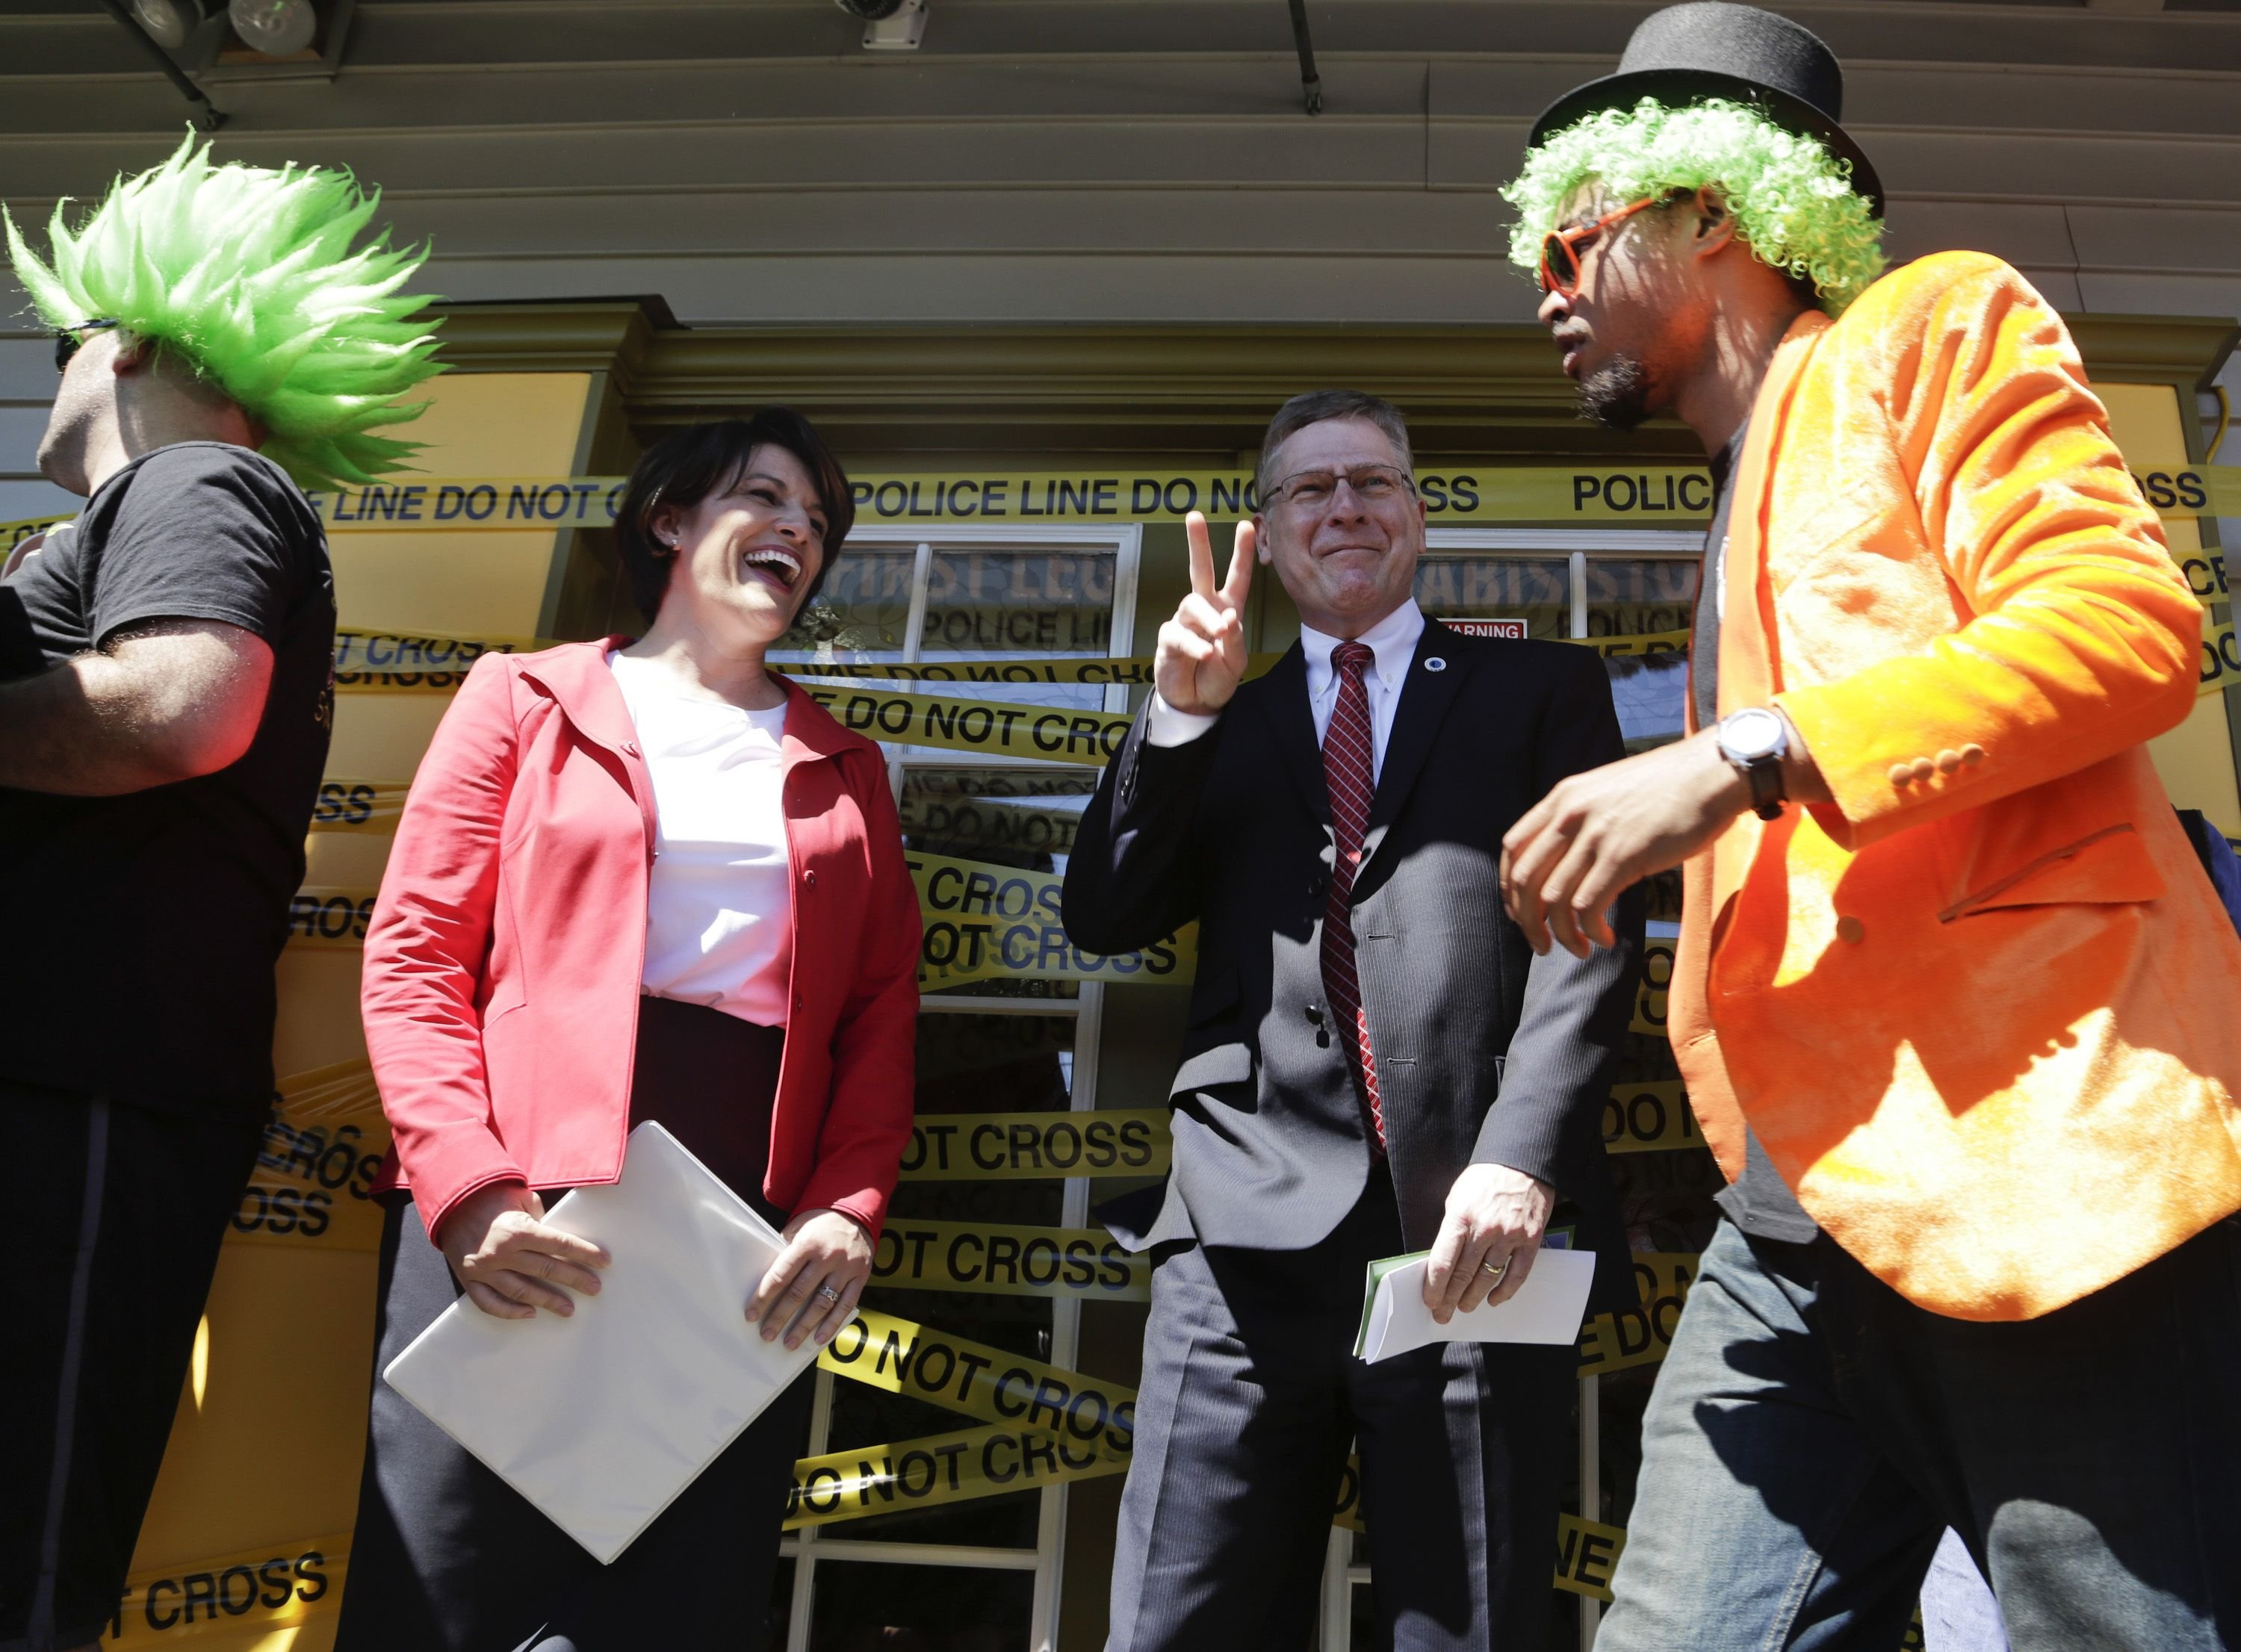 Alison Holcomb (2nd L), Criminal Justice Director of ACLU of Washington State and co-author of state Initiative 502 legalizing marijuana, and Seattle City Attorney Pete Holmes (2nd R) take part in the opening ceremonies at Cannabis City during the first day of legal retail marijuana sales in Seattle on July 8, 2014.